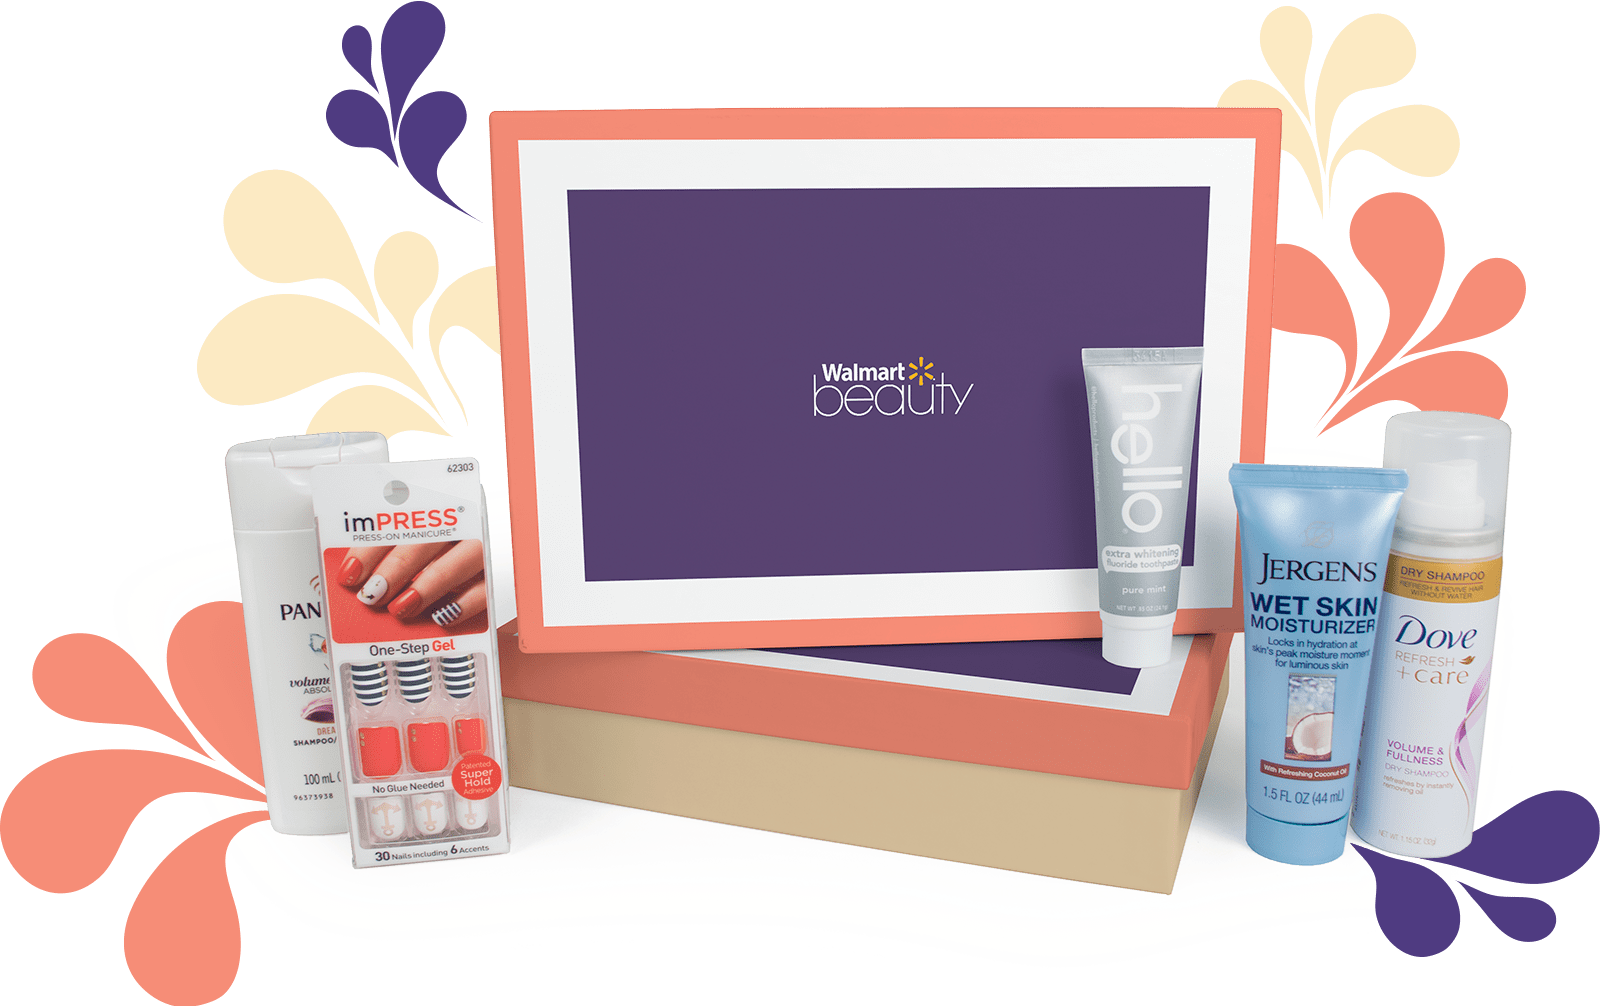 Walmart Beauty Box Fall 2017 Spoilers – Classic Box!